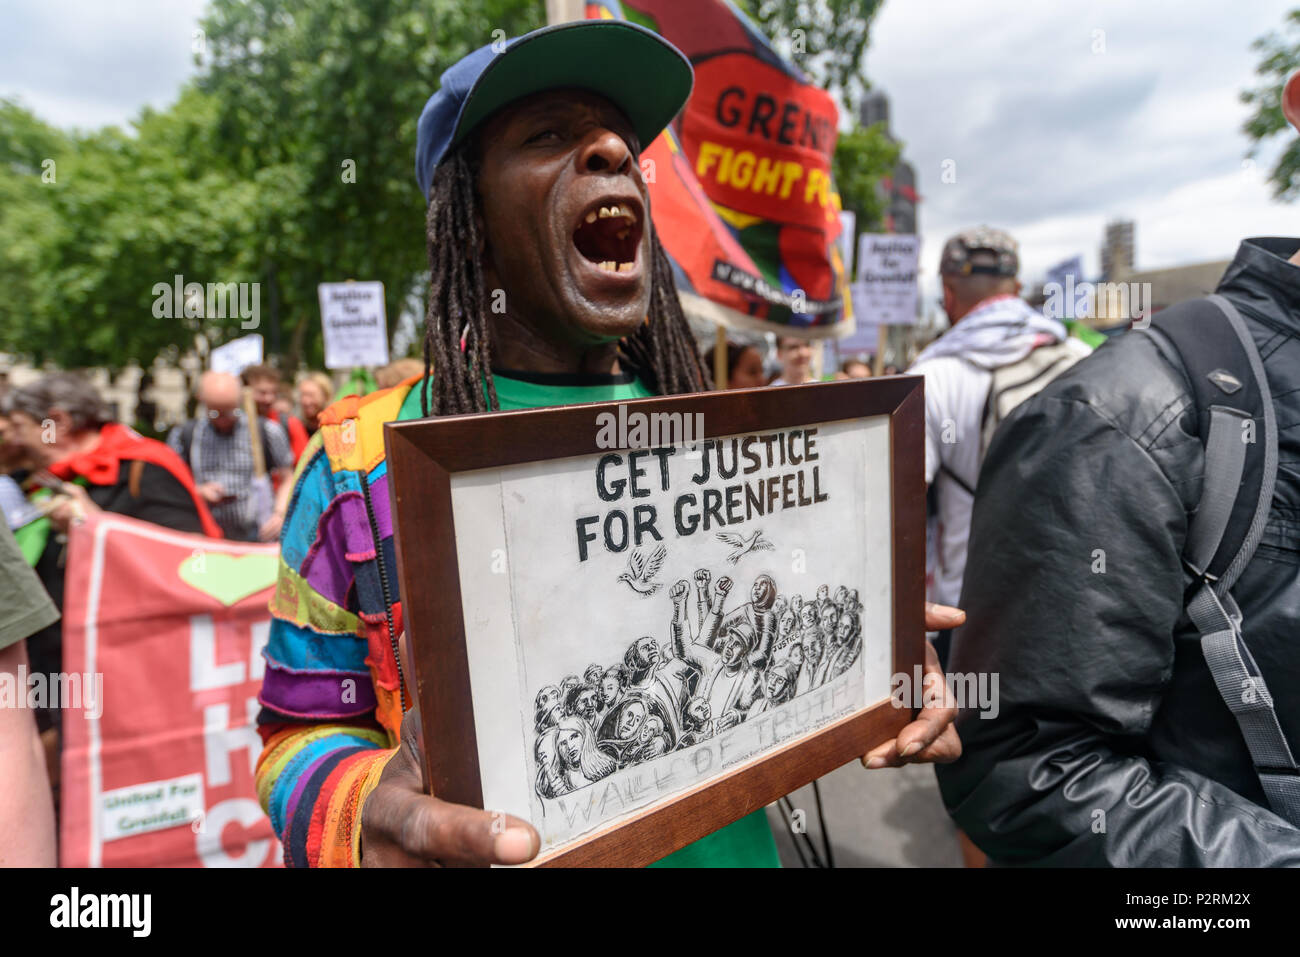 London, UK. 16th June 2018.  A man holds a framed picture with the message 'Get Justice For Grenfell' as he marches with the  large crowd from Downing St to the Home Office in solidarity with the 72 killed and the survivors of the Grenfell fire a year ago at a protest organised by Justice4Grenfell and the FBU (Fire Brigades Union.) After some speeches they marched to the Home Office for a brief protest before returning to Downing St for more speeches. Speakers complained of the many promises made by Theresa May which have been broken, despite her promise all survivors would be rehoused in 3 we - Stock Image